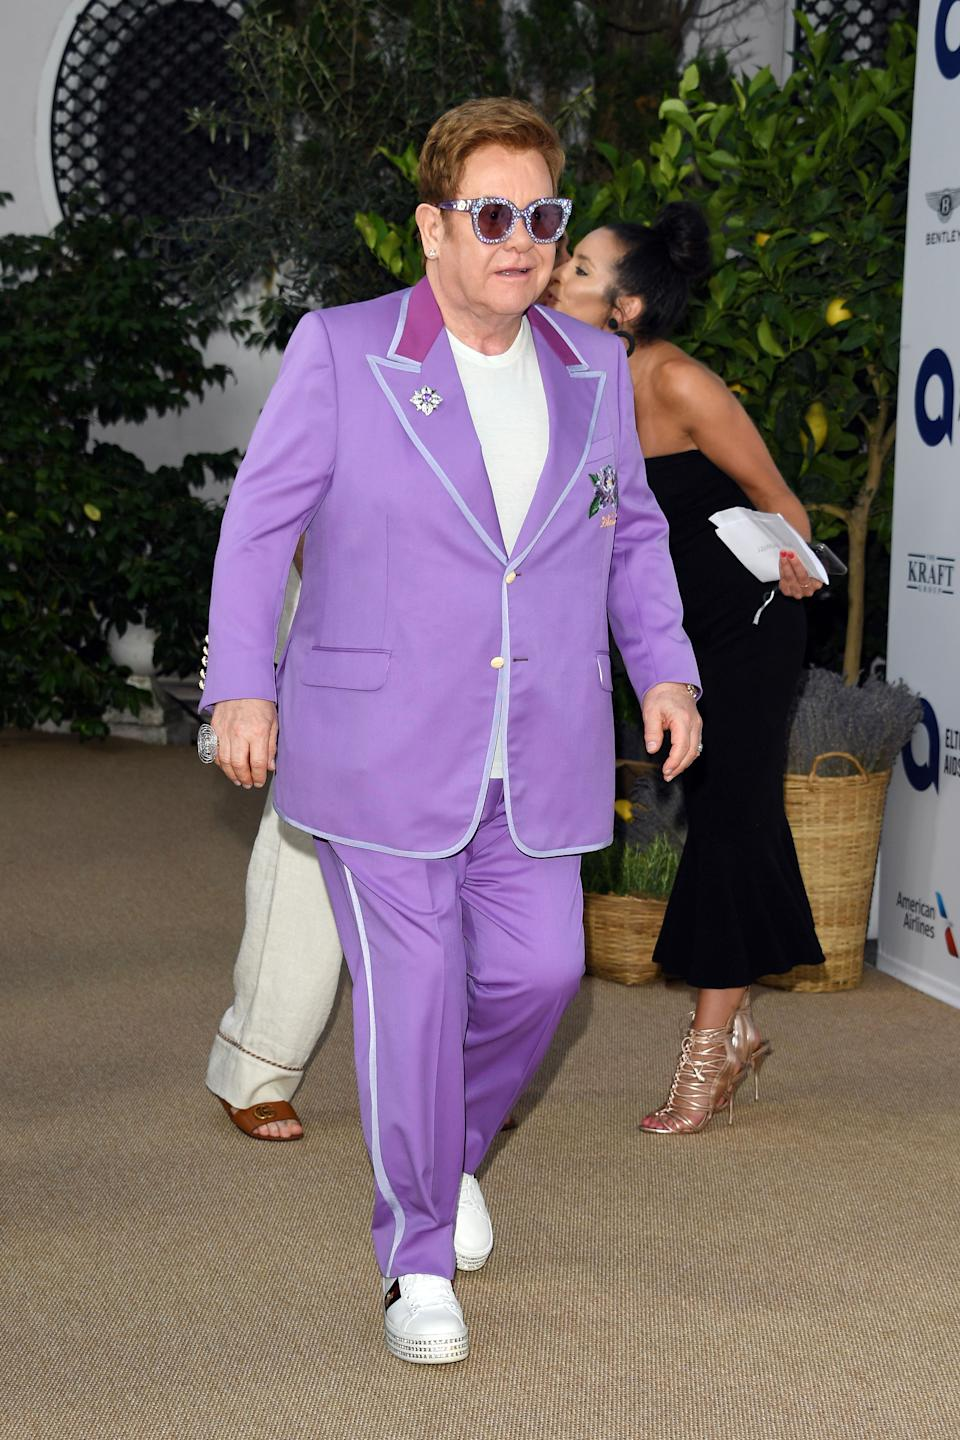 """Sir Elton John attends the first """"Midsummer Party"""" hosted by Elton John and David Furnish to raise funds for the Elton John Aids Foundation on July 24, 2019 in Antibes, France."""